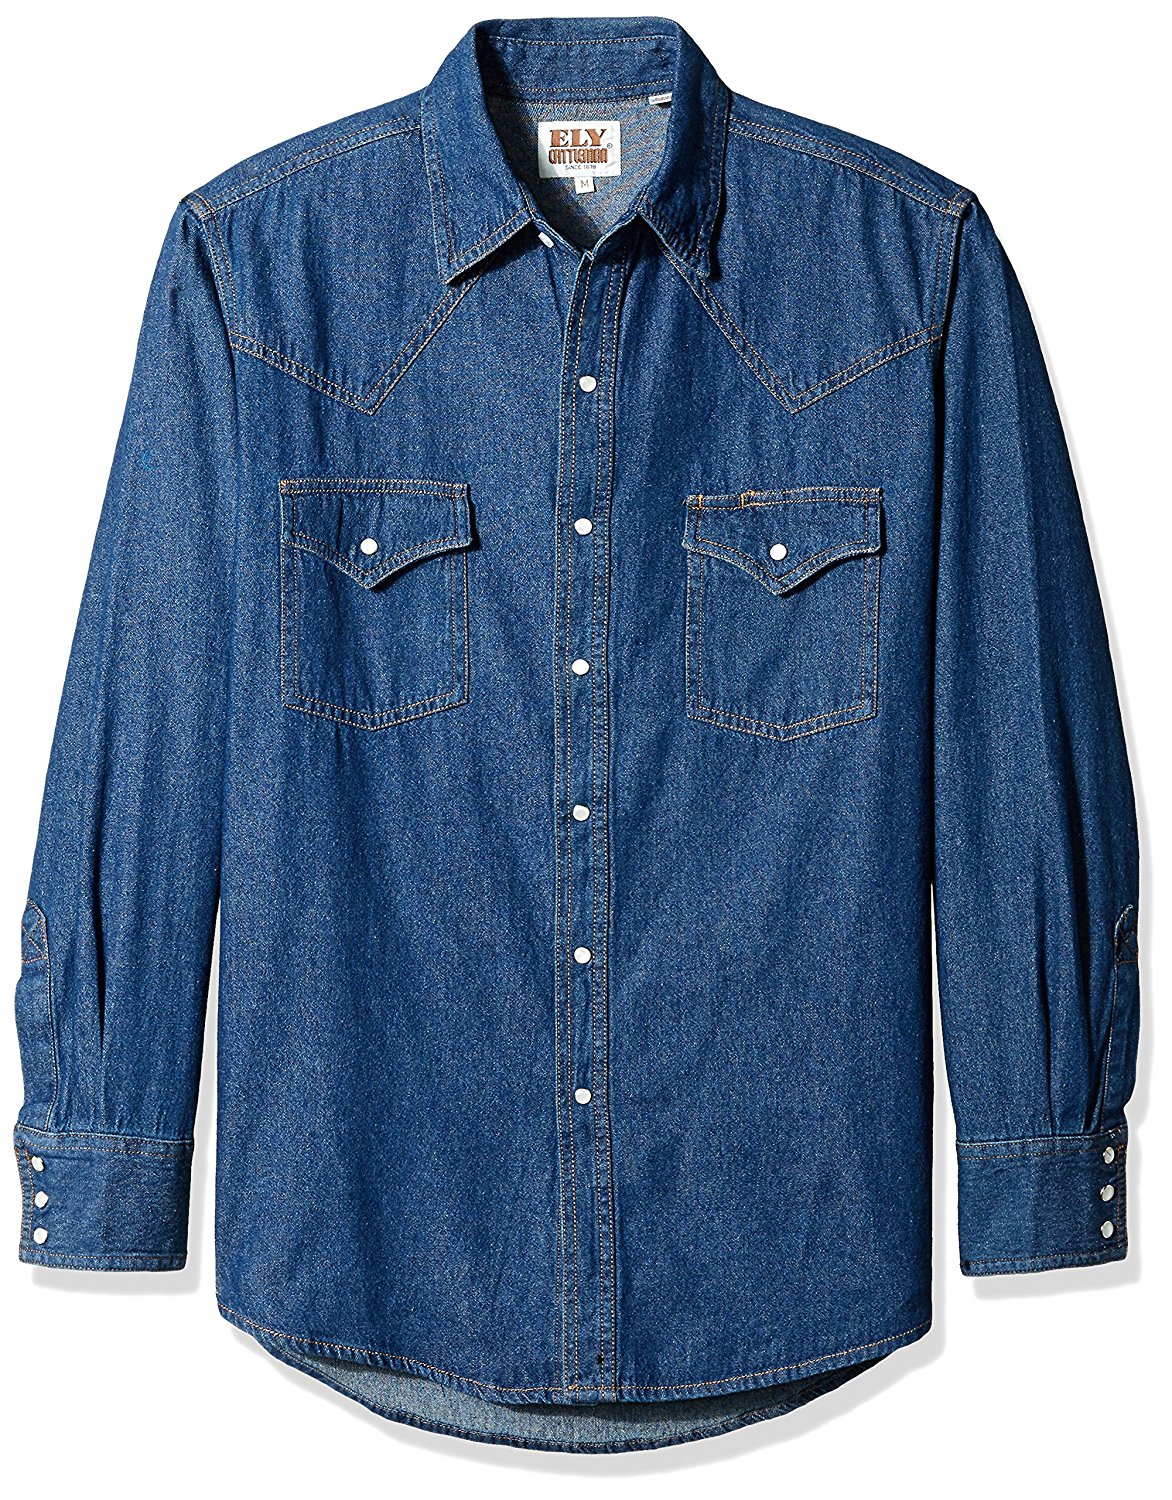 3be7fe1d Get Quotations · Ely & Walker Men's Long Sleeve Denim Western Shirt,